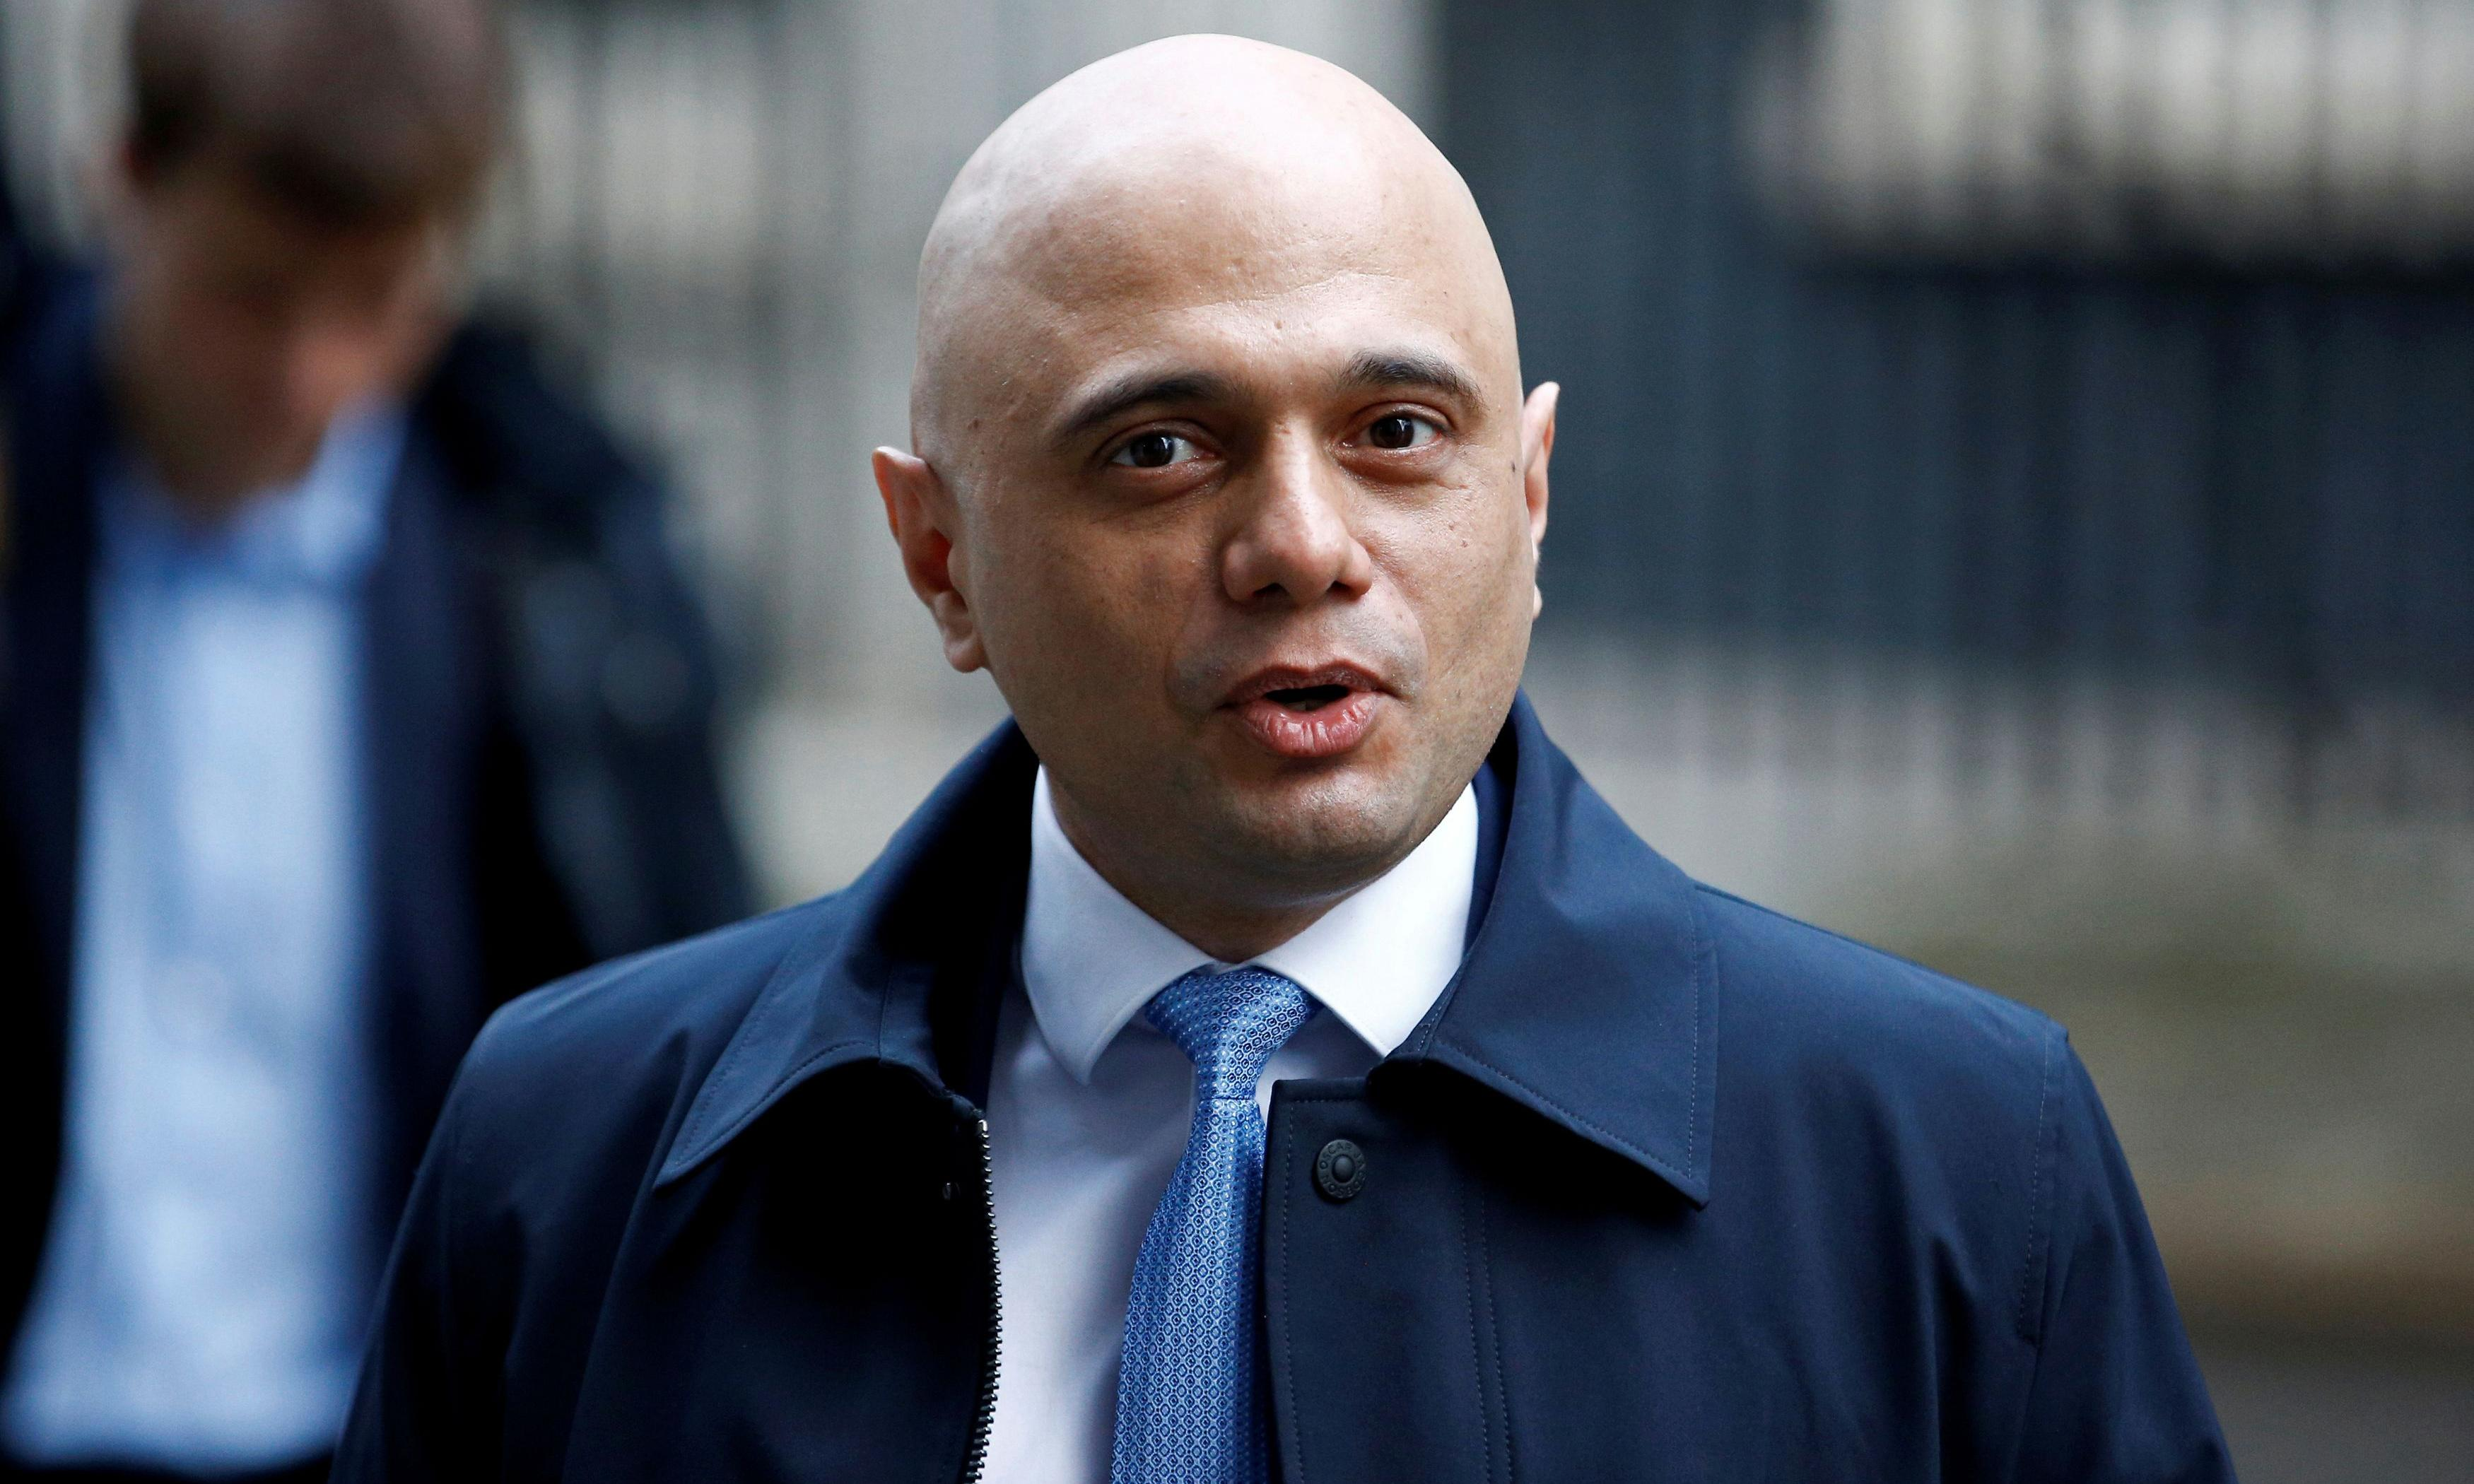 Brexit: Javid comments on non-alignment with EU prompt warnings of price rises